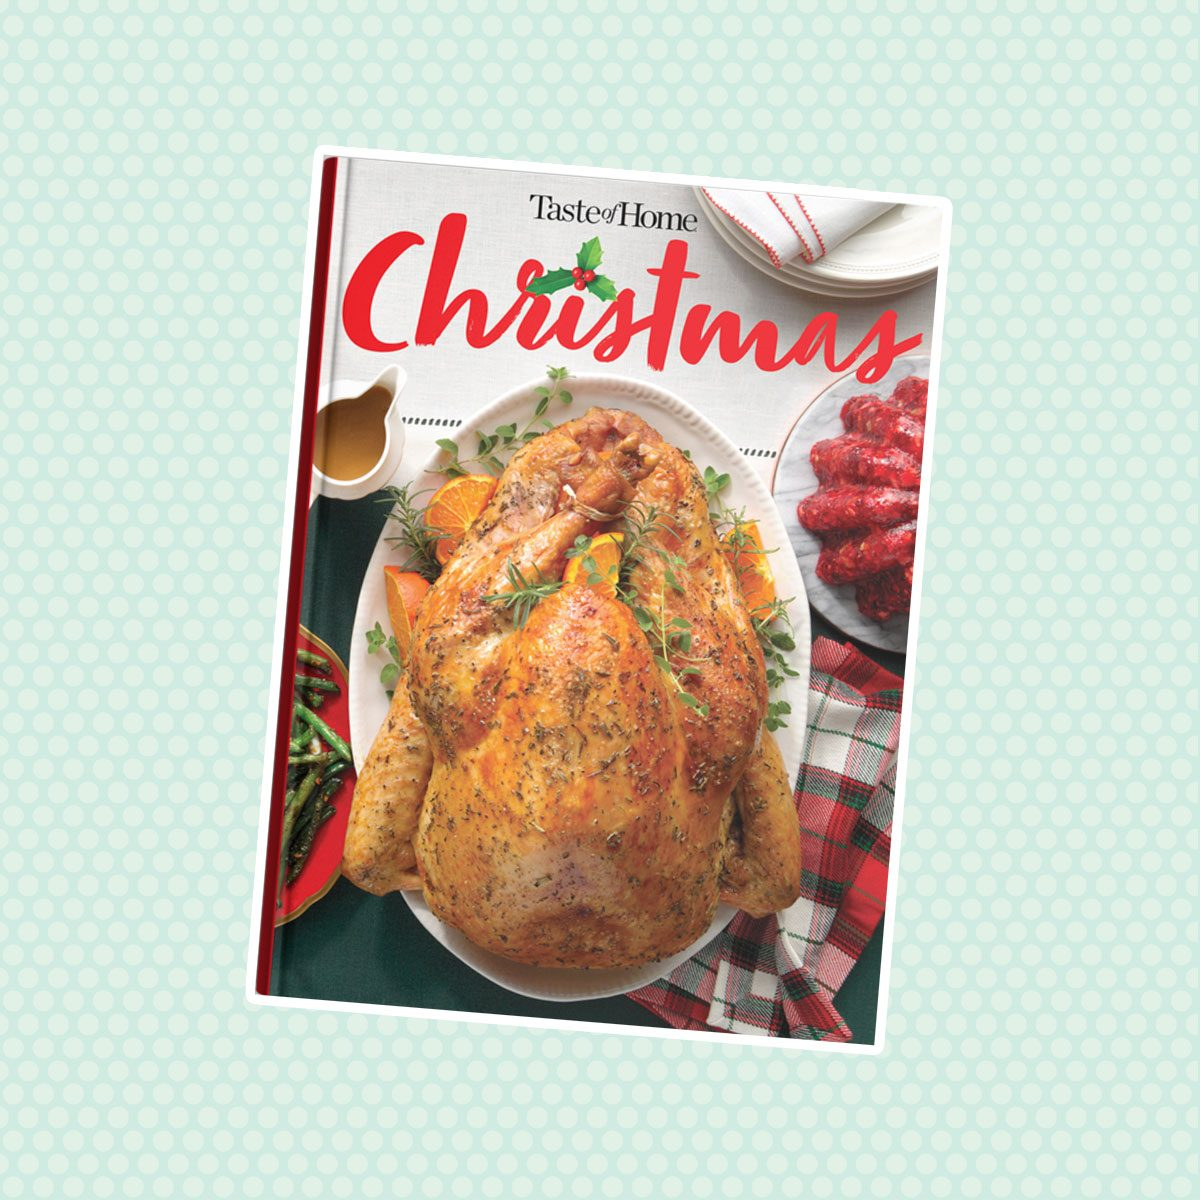 Taste Of Home Christmas 2020 Cookbook 10 Christmas Cookbooks to Add to Your Collection